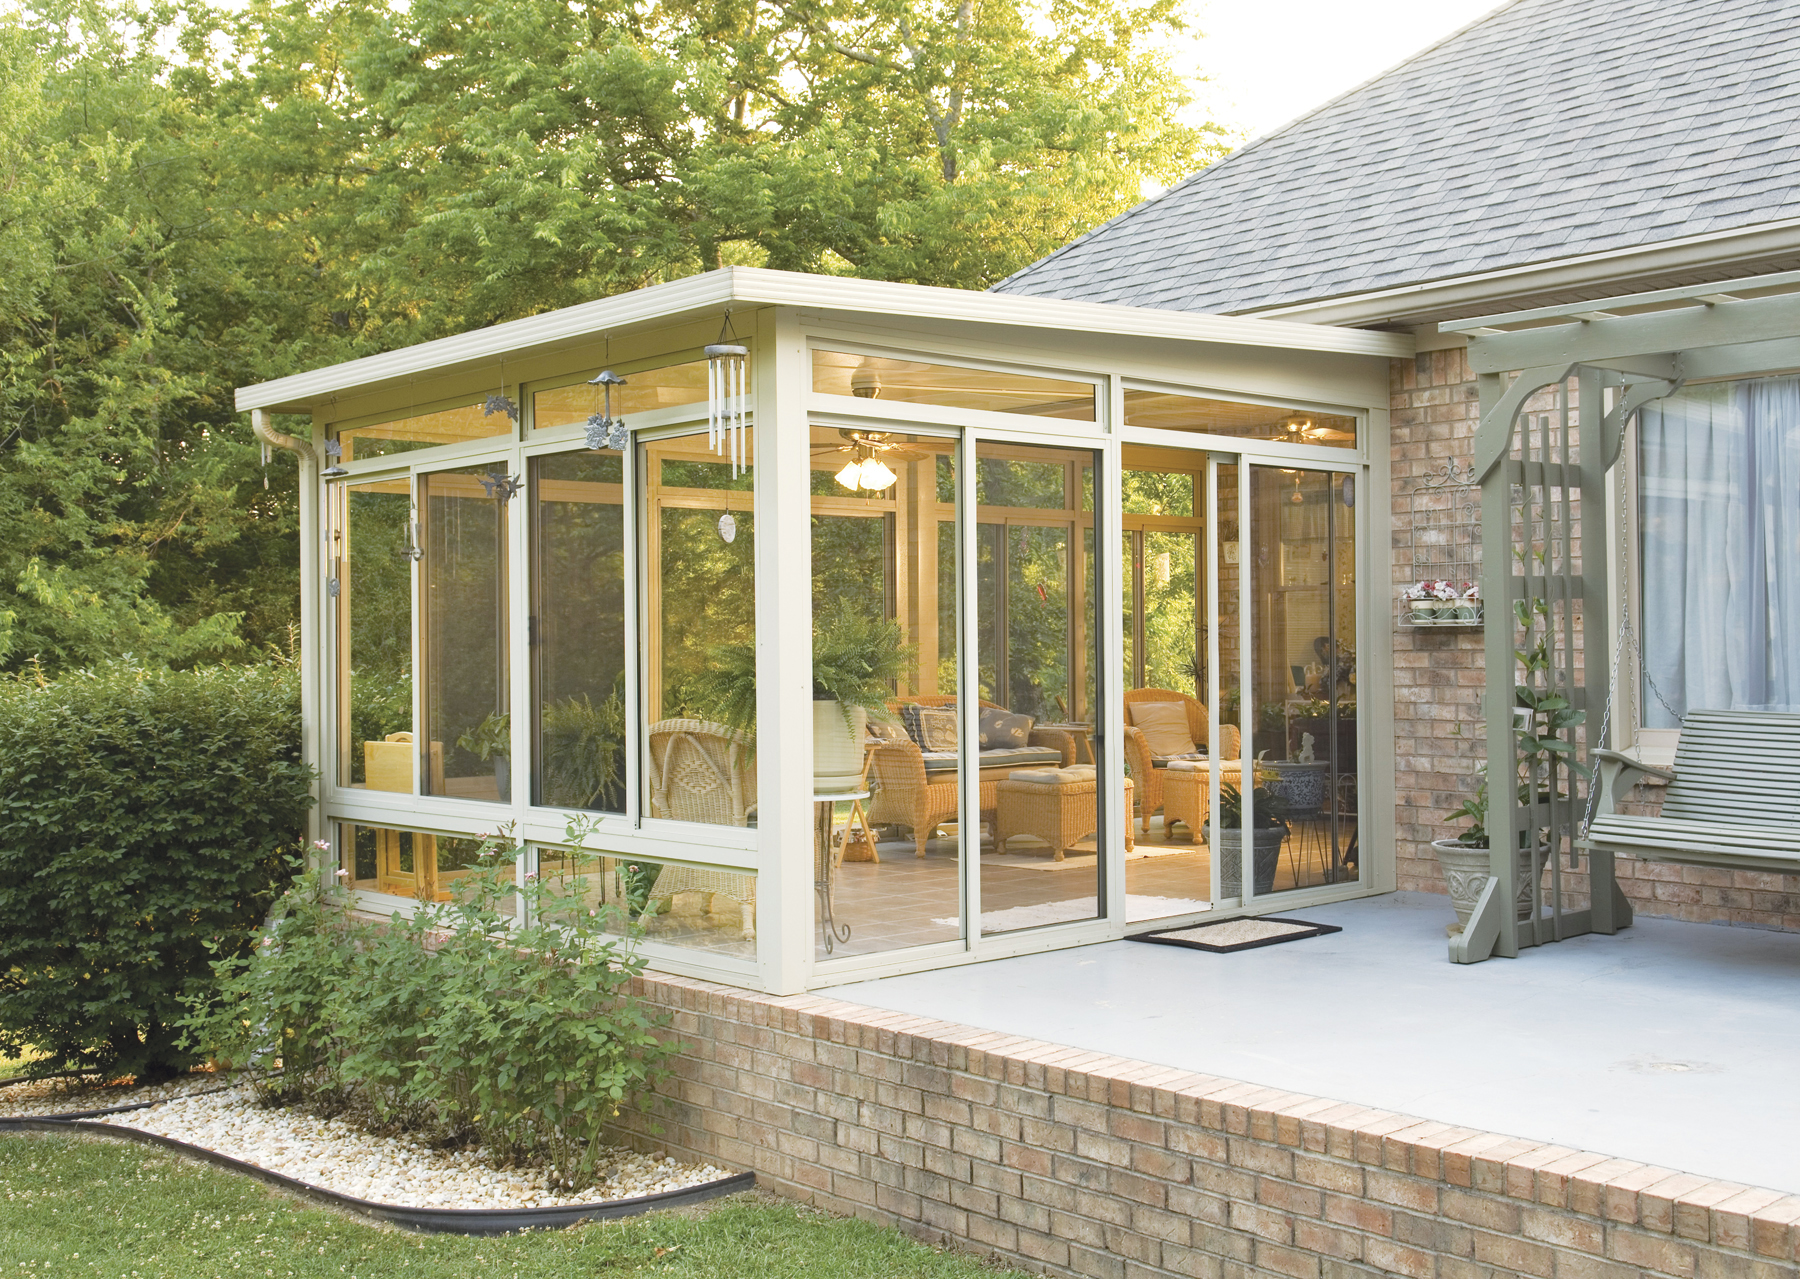 All season sunrooms in pittsburgh pa for Backyard sunroom